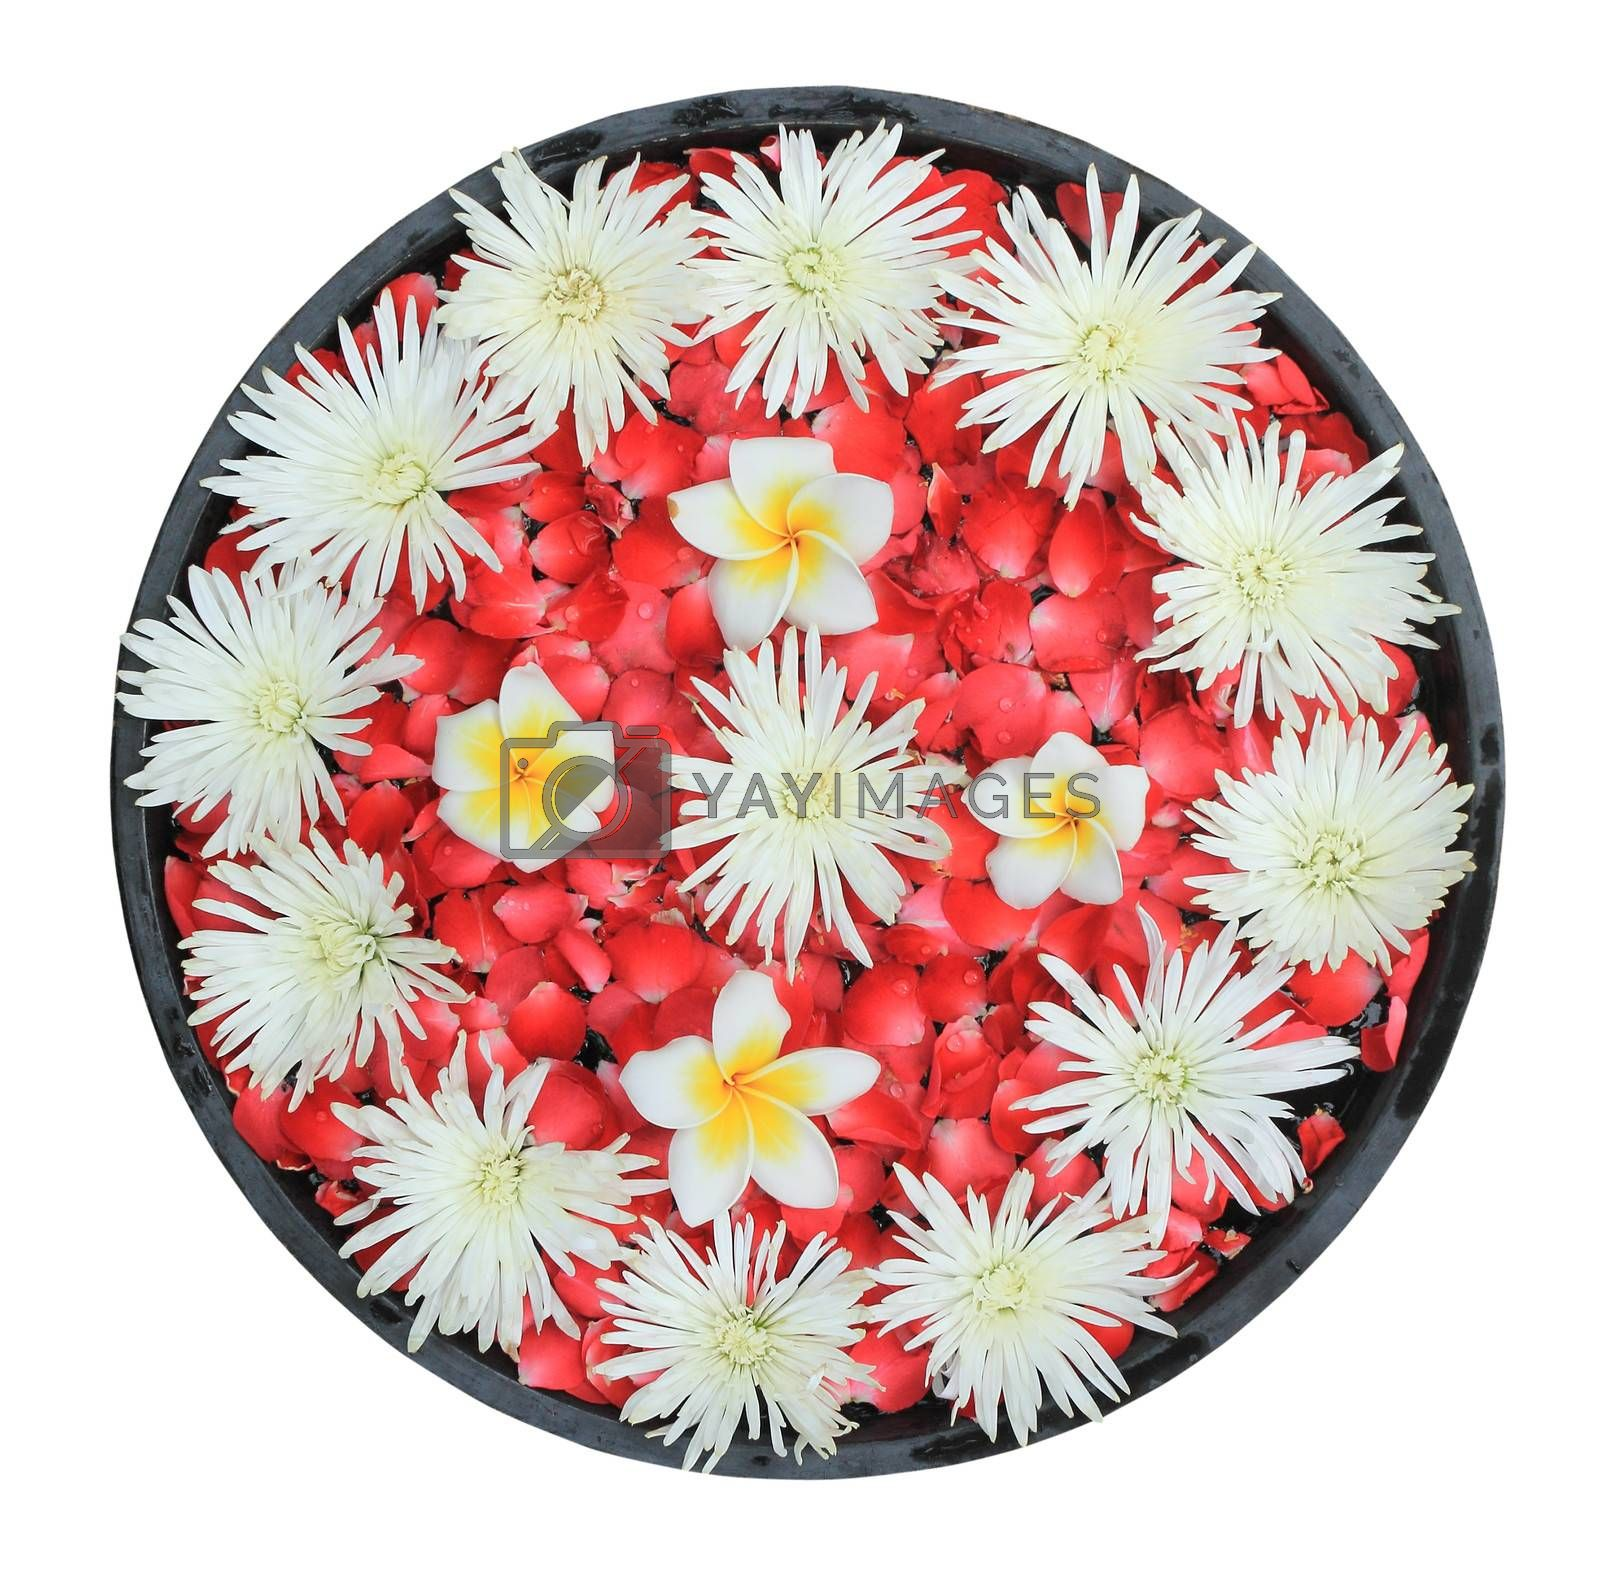 Flowers floating in the ancient bowl isolated